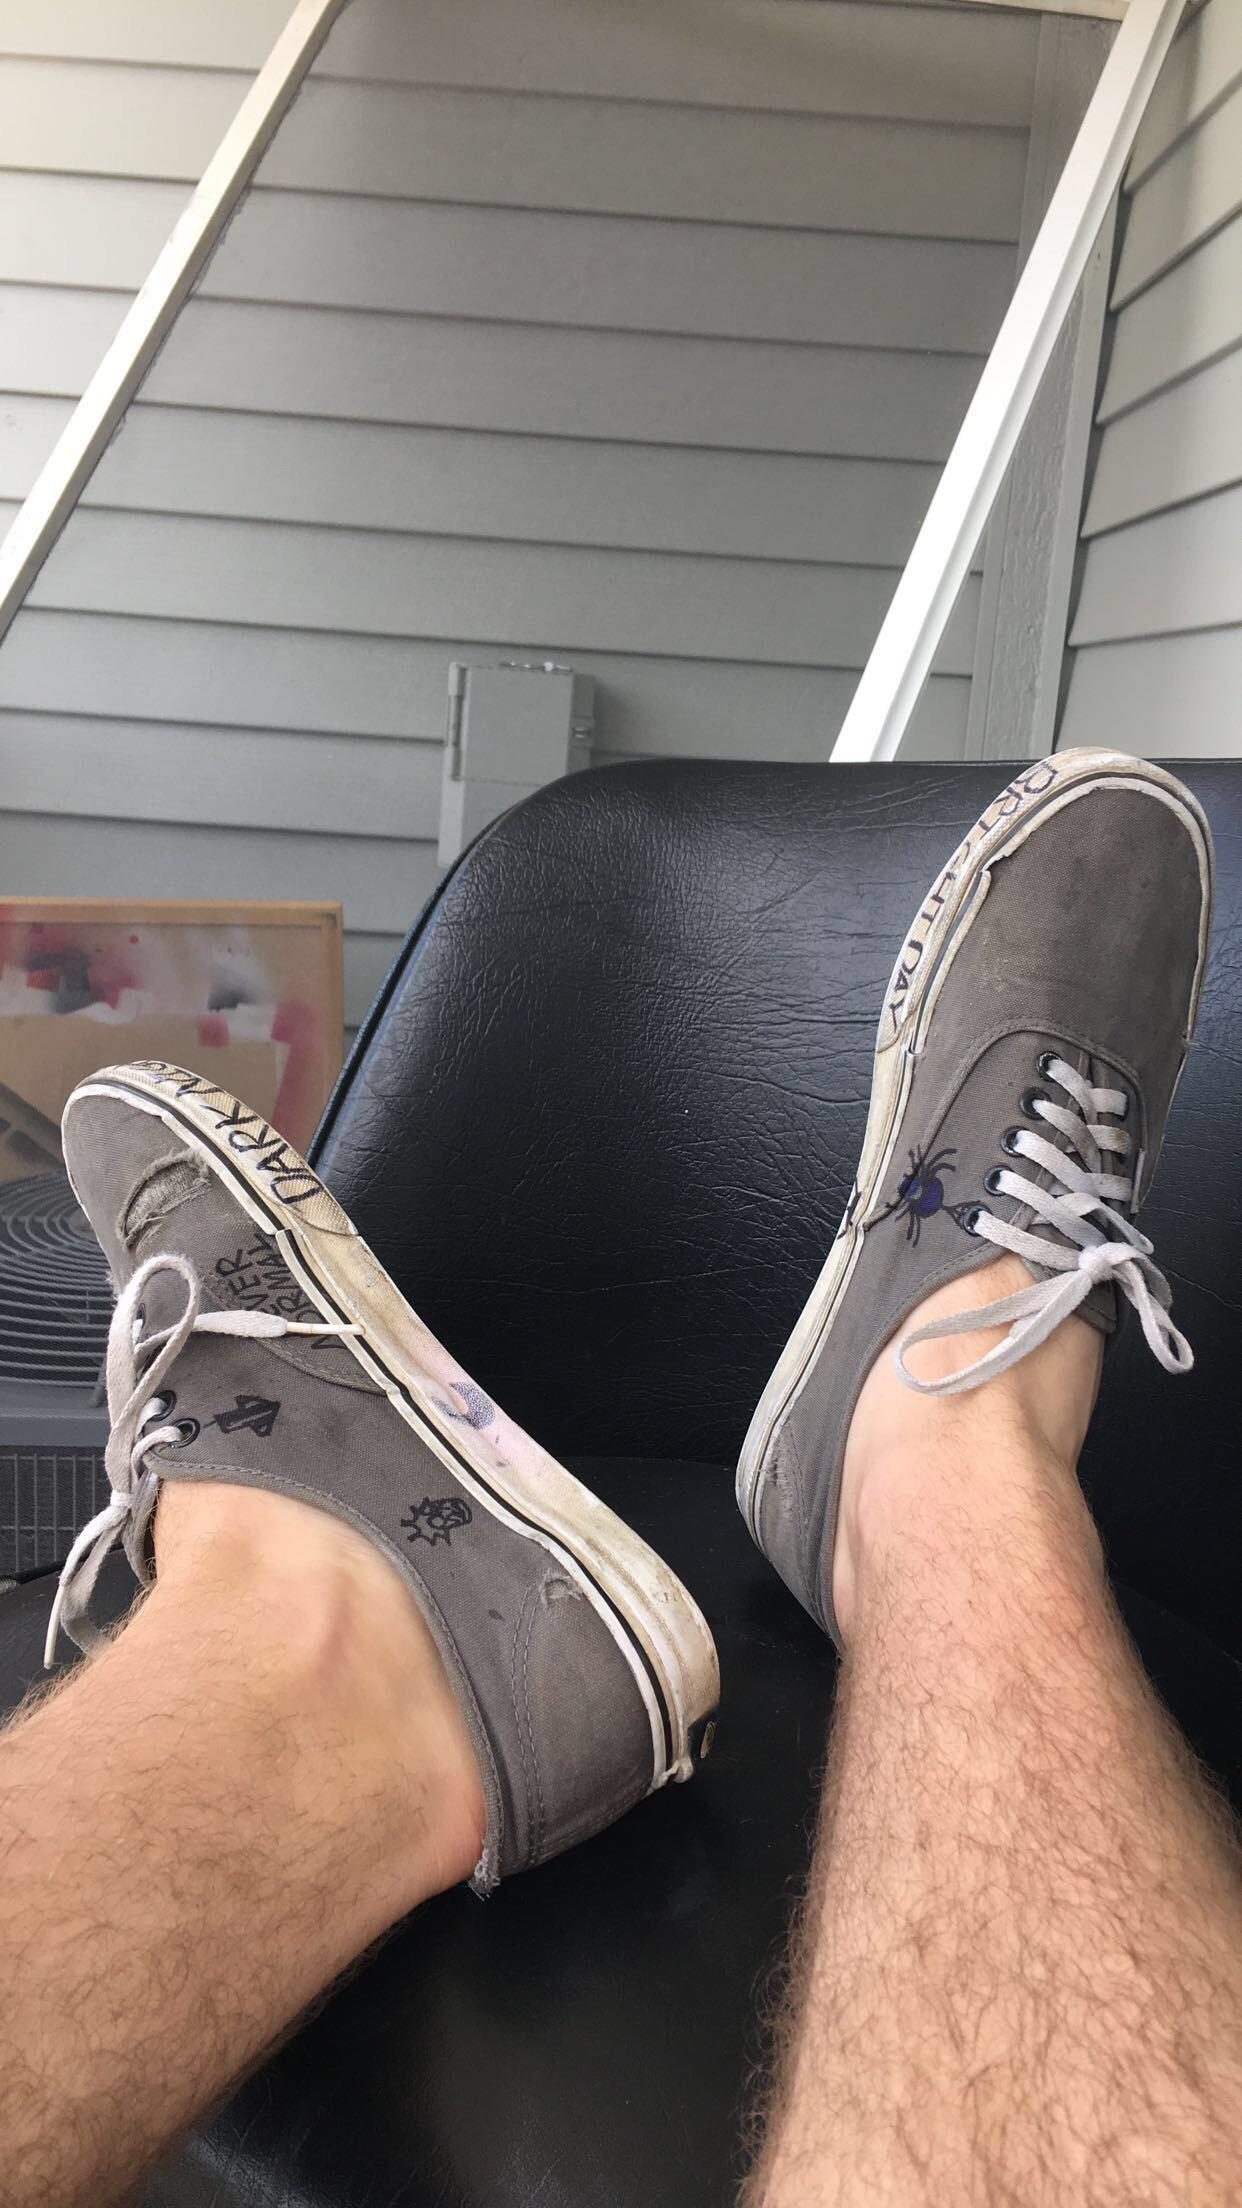 Drawing On Vans : drawing, Anyone, Their, Sharpie?